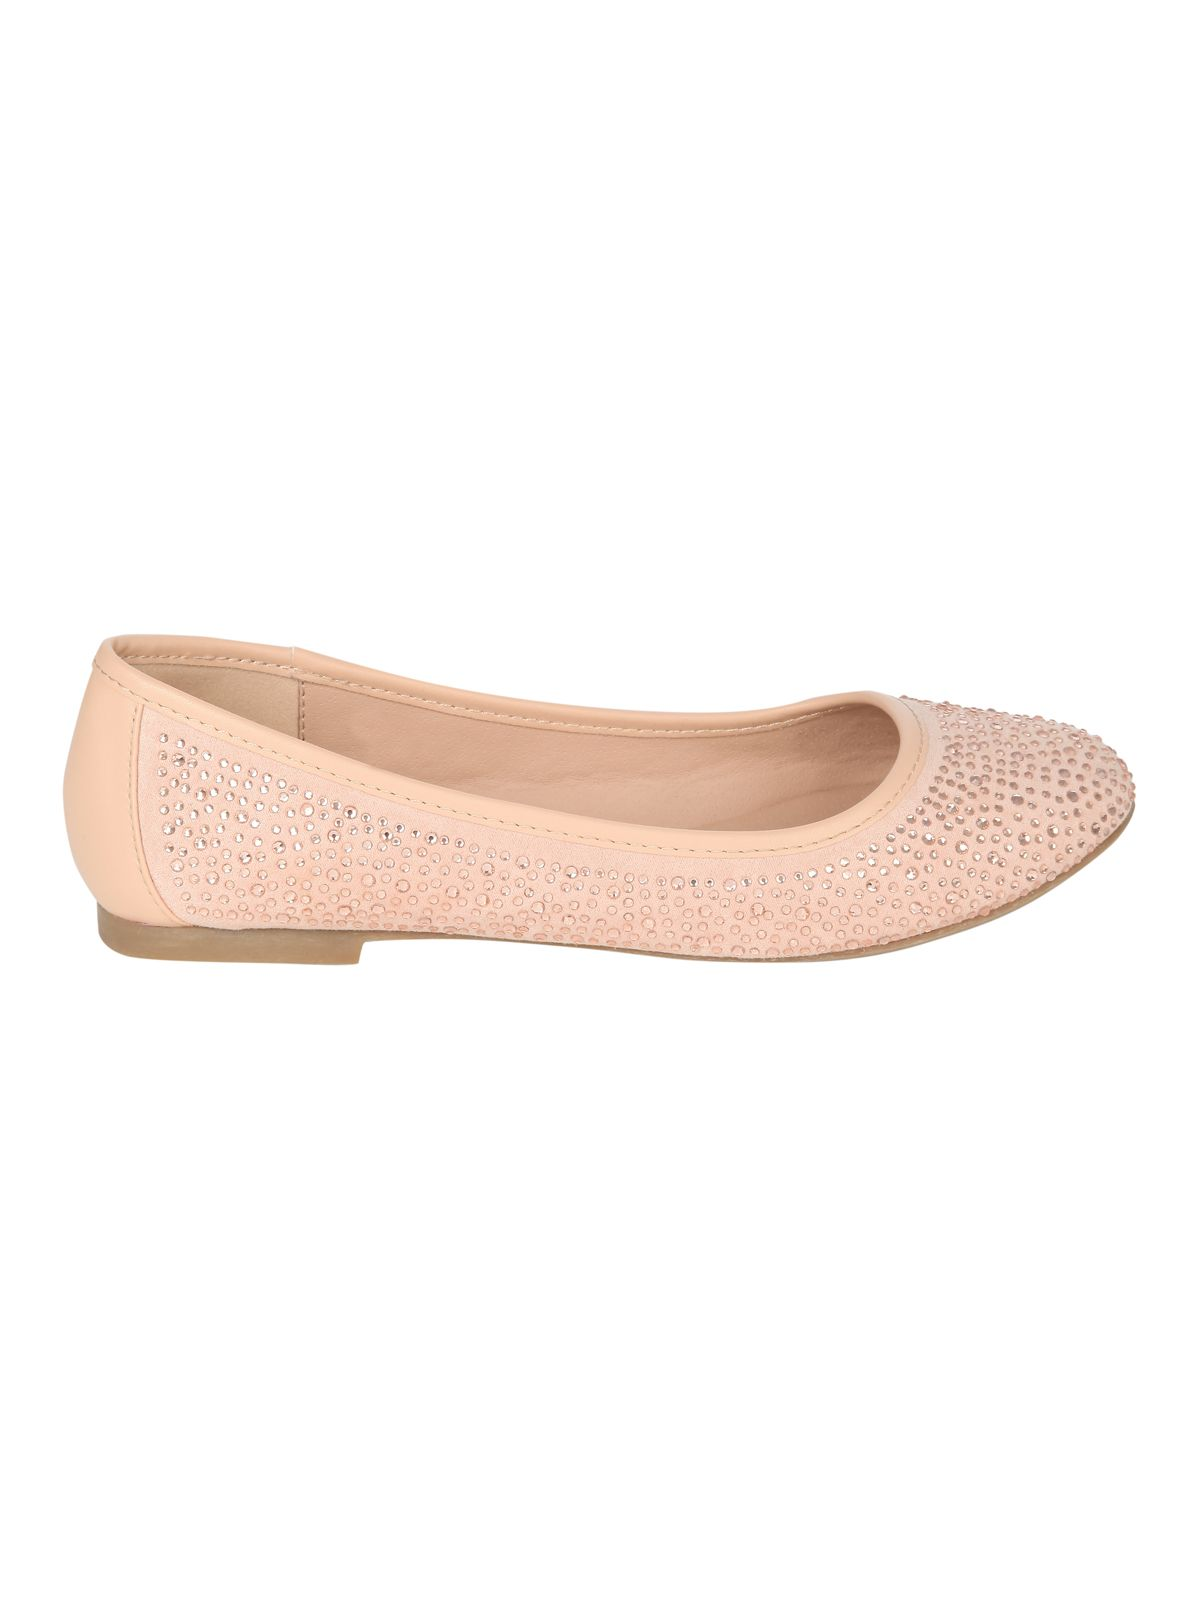 Diamante embellished ballet pumps